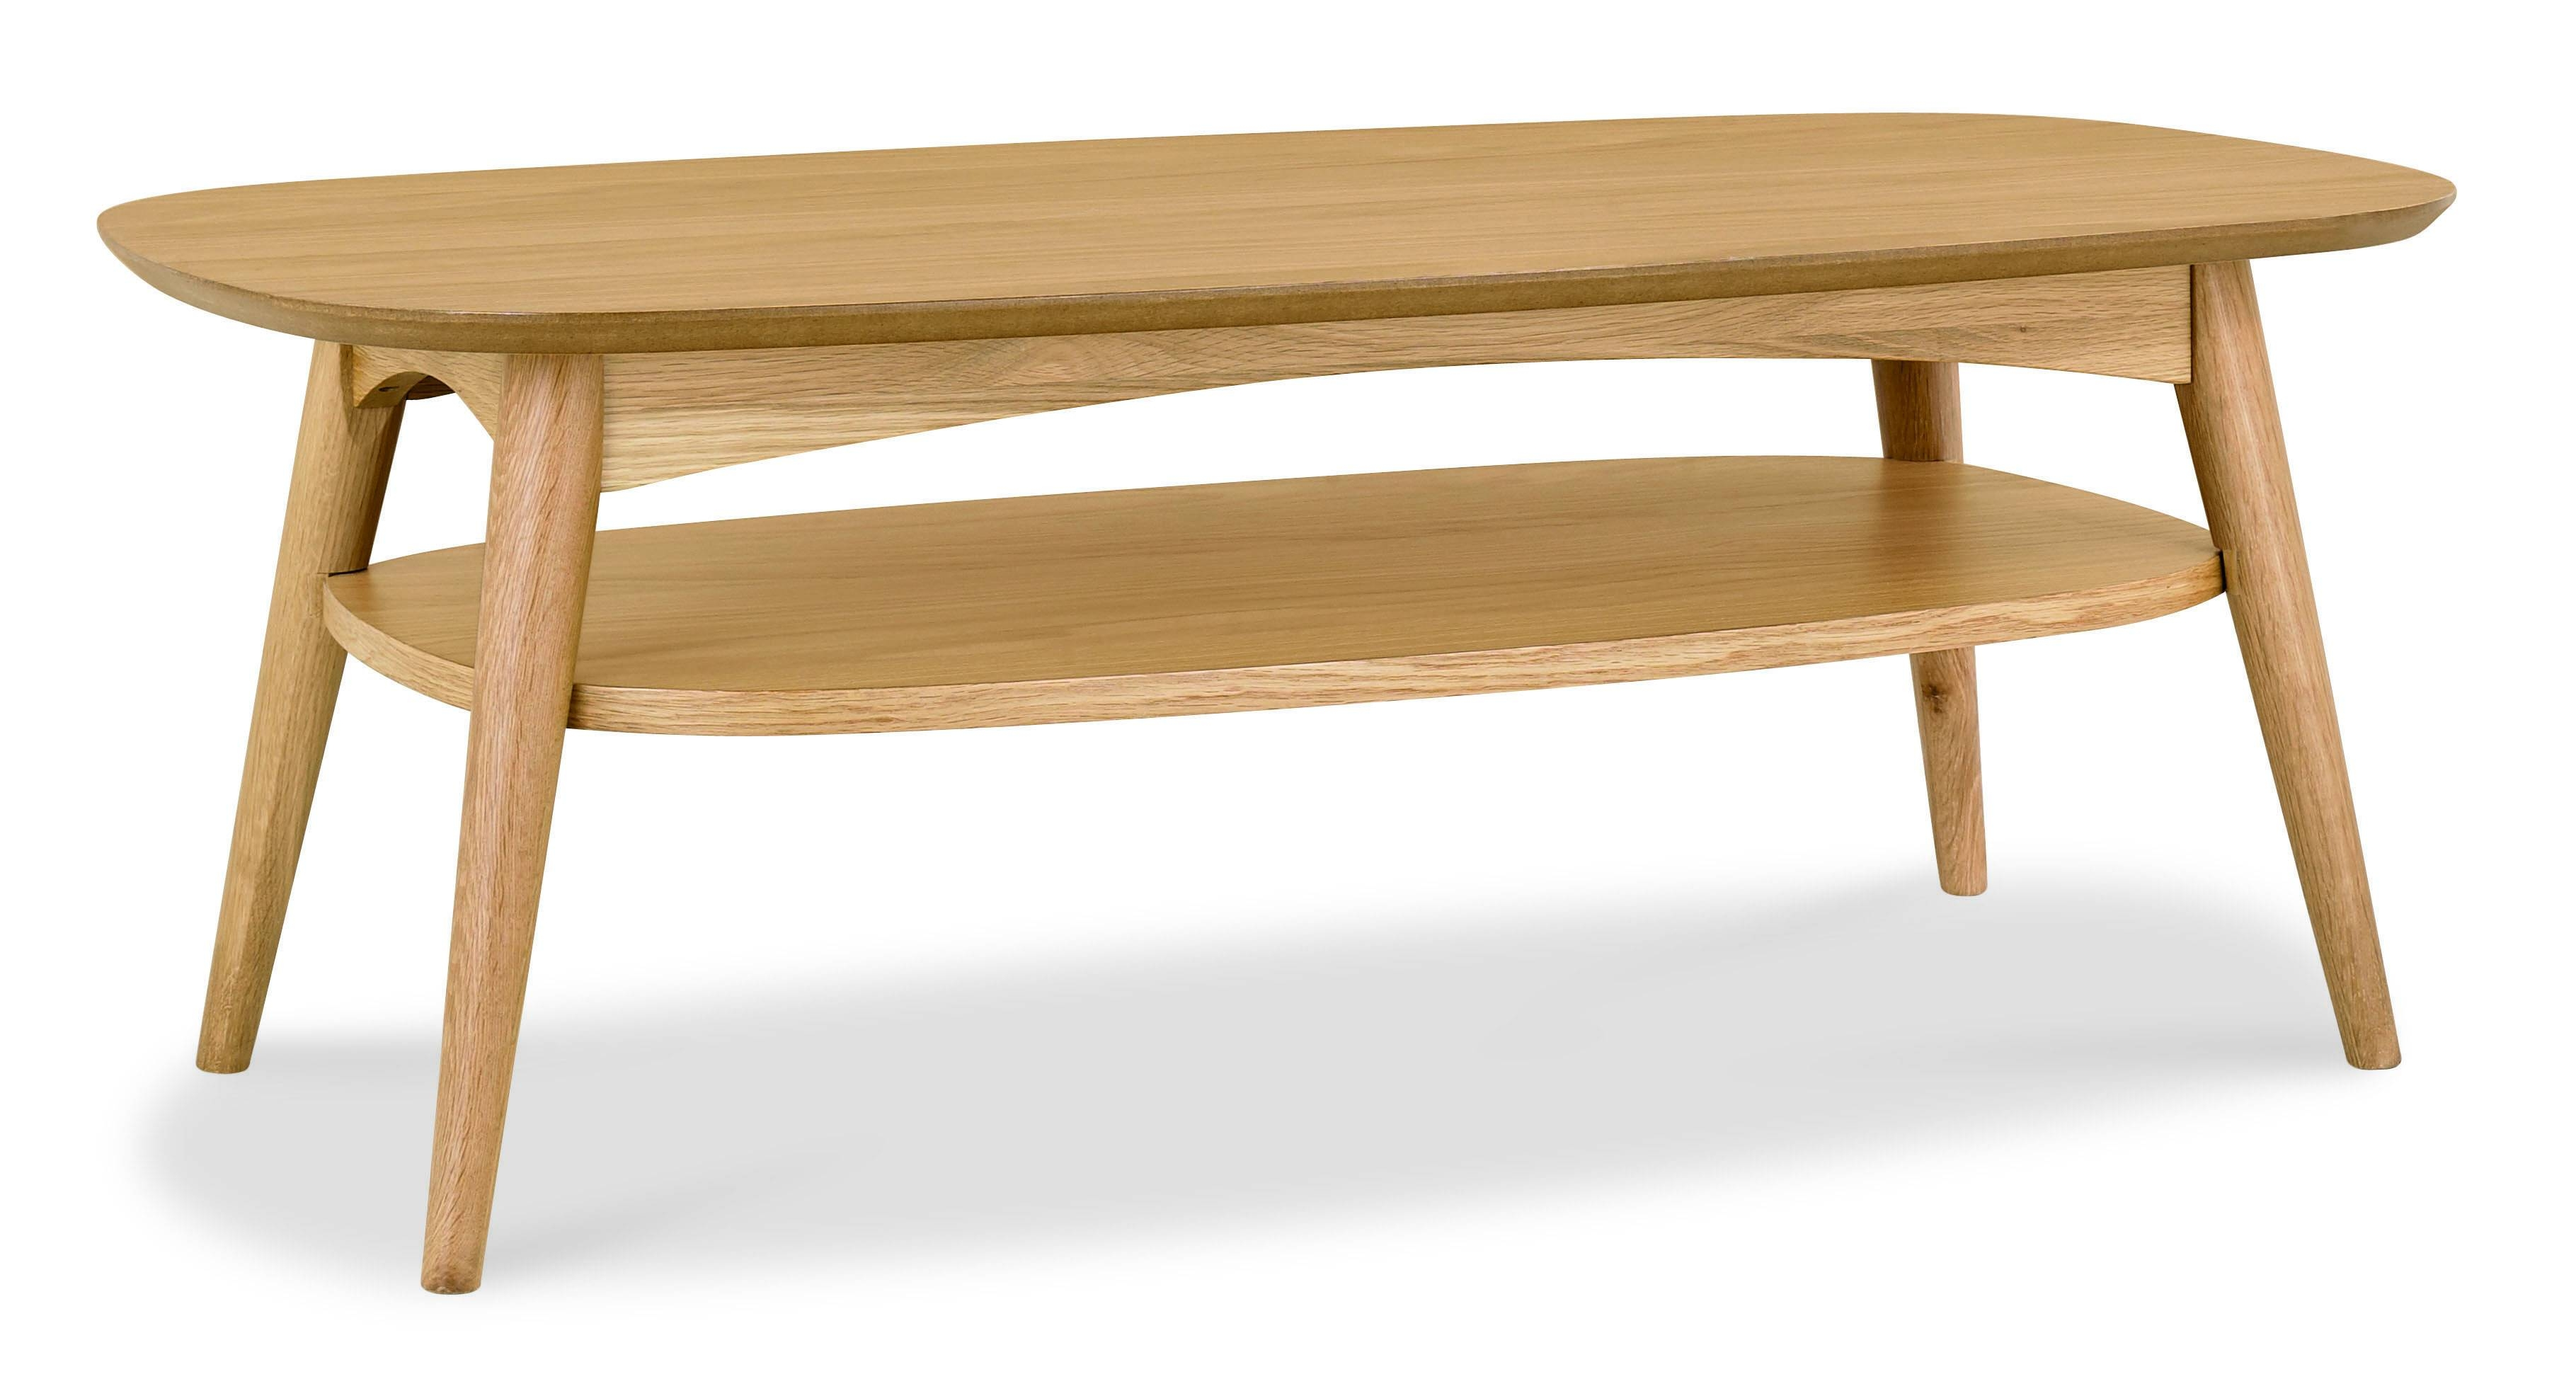 Oslo Oak Coffee Table With Shelf | Oak Furniture Solutions throughout Oak Coffee Table With Shelf (Image 11 of 15)